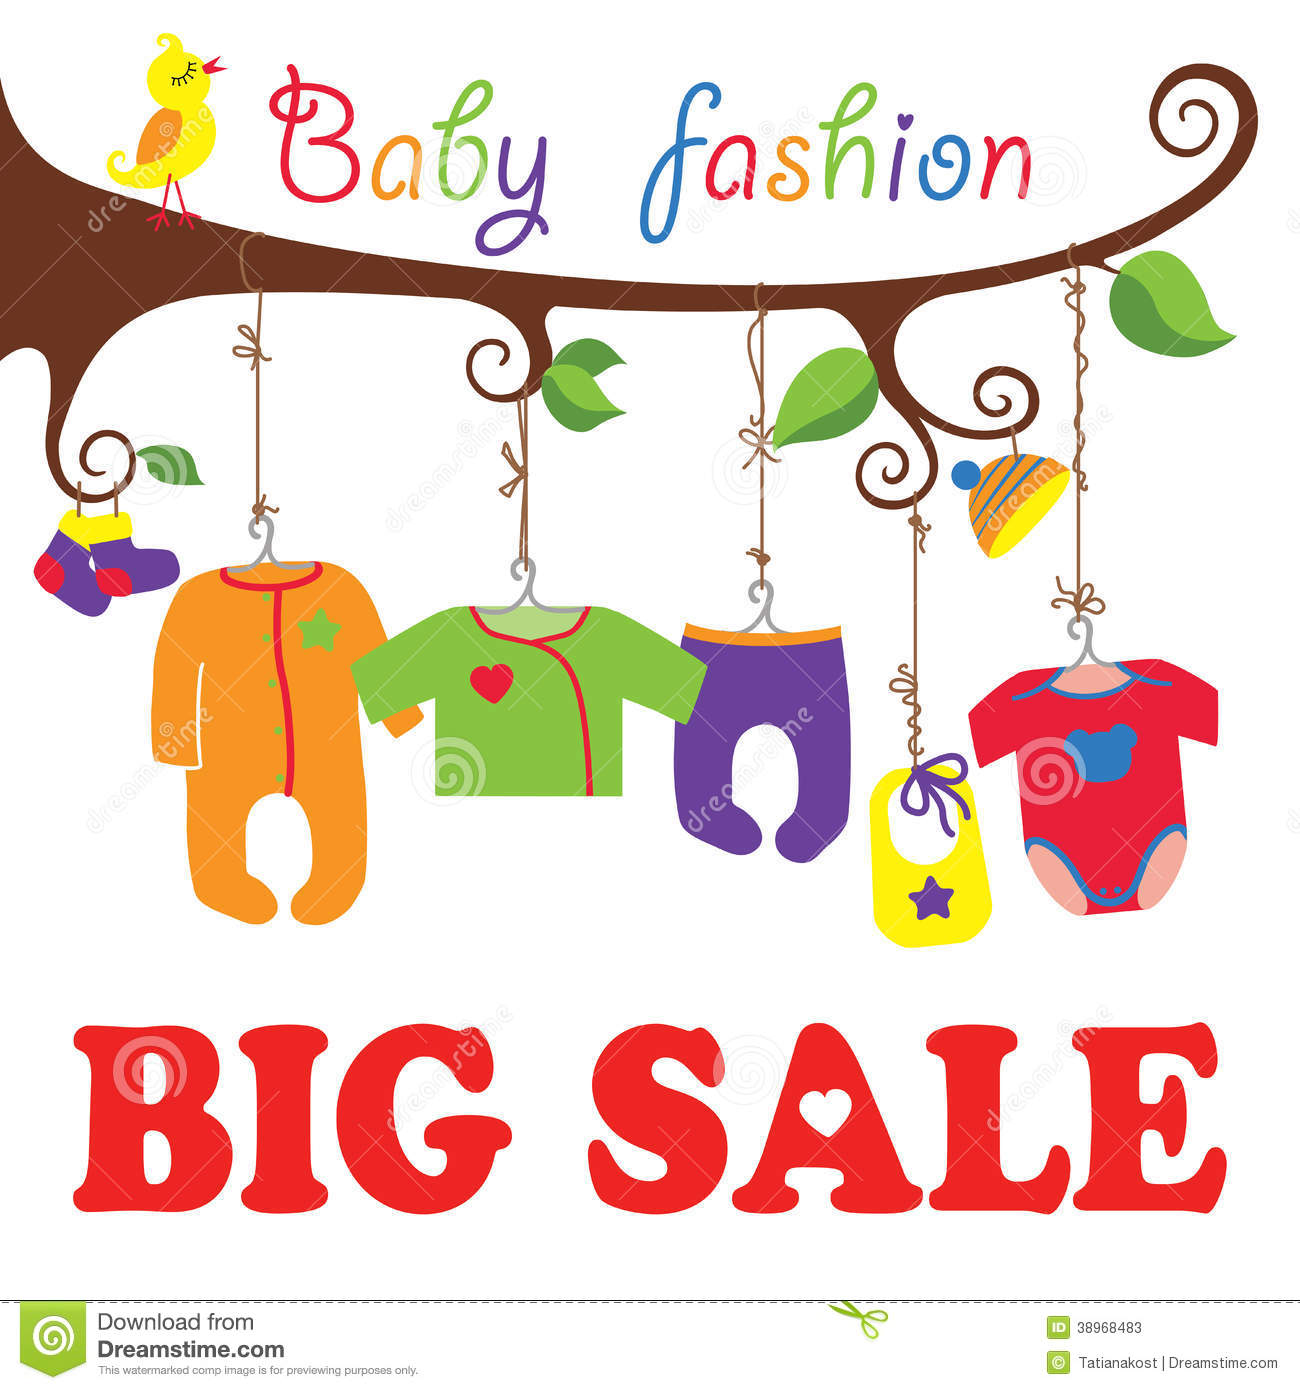 getessay2016.tk provides baby clothes items from China top selected Baby & Kids Clothing, Baby, Kids & Maternity suppliers at wholesale prices with worldwide delivery. You can find clothe, Girl baby clothes free shipping, baby clothes for boys and view 69 baby clothes .